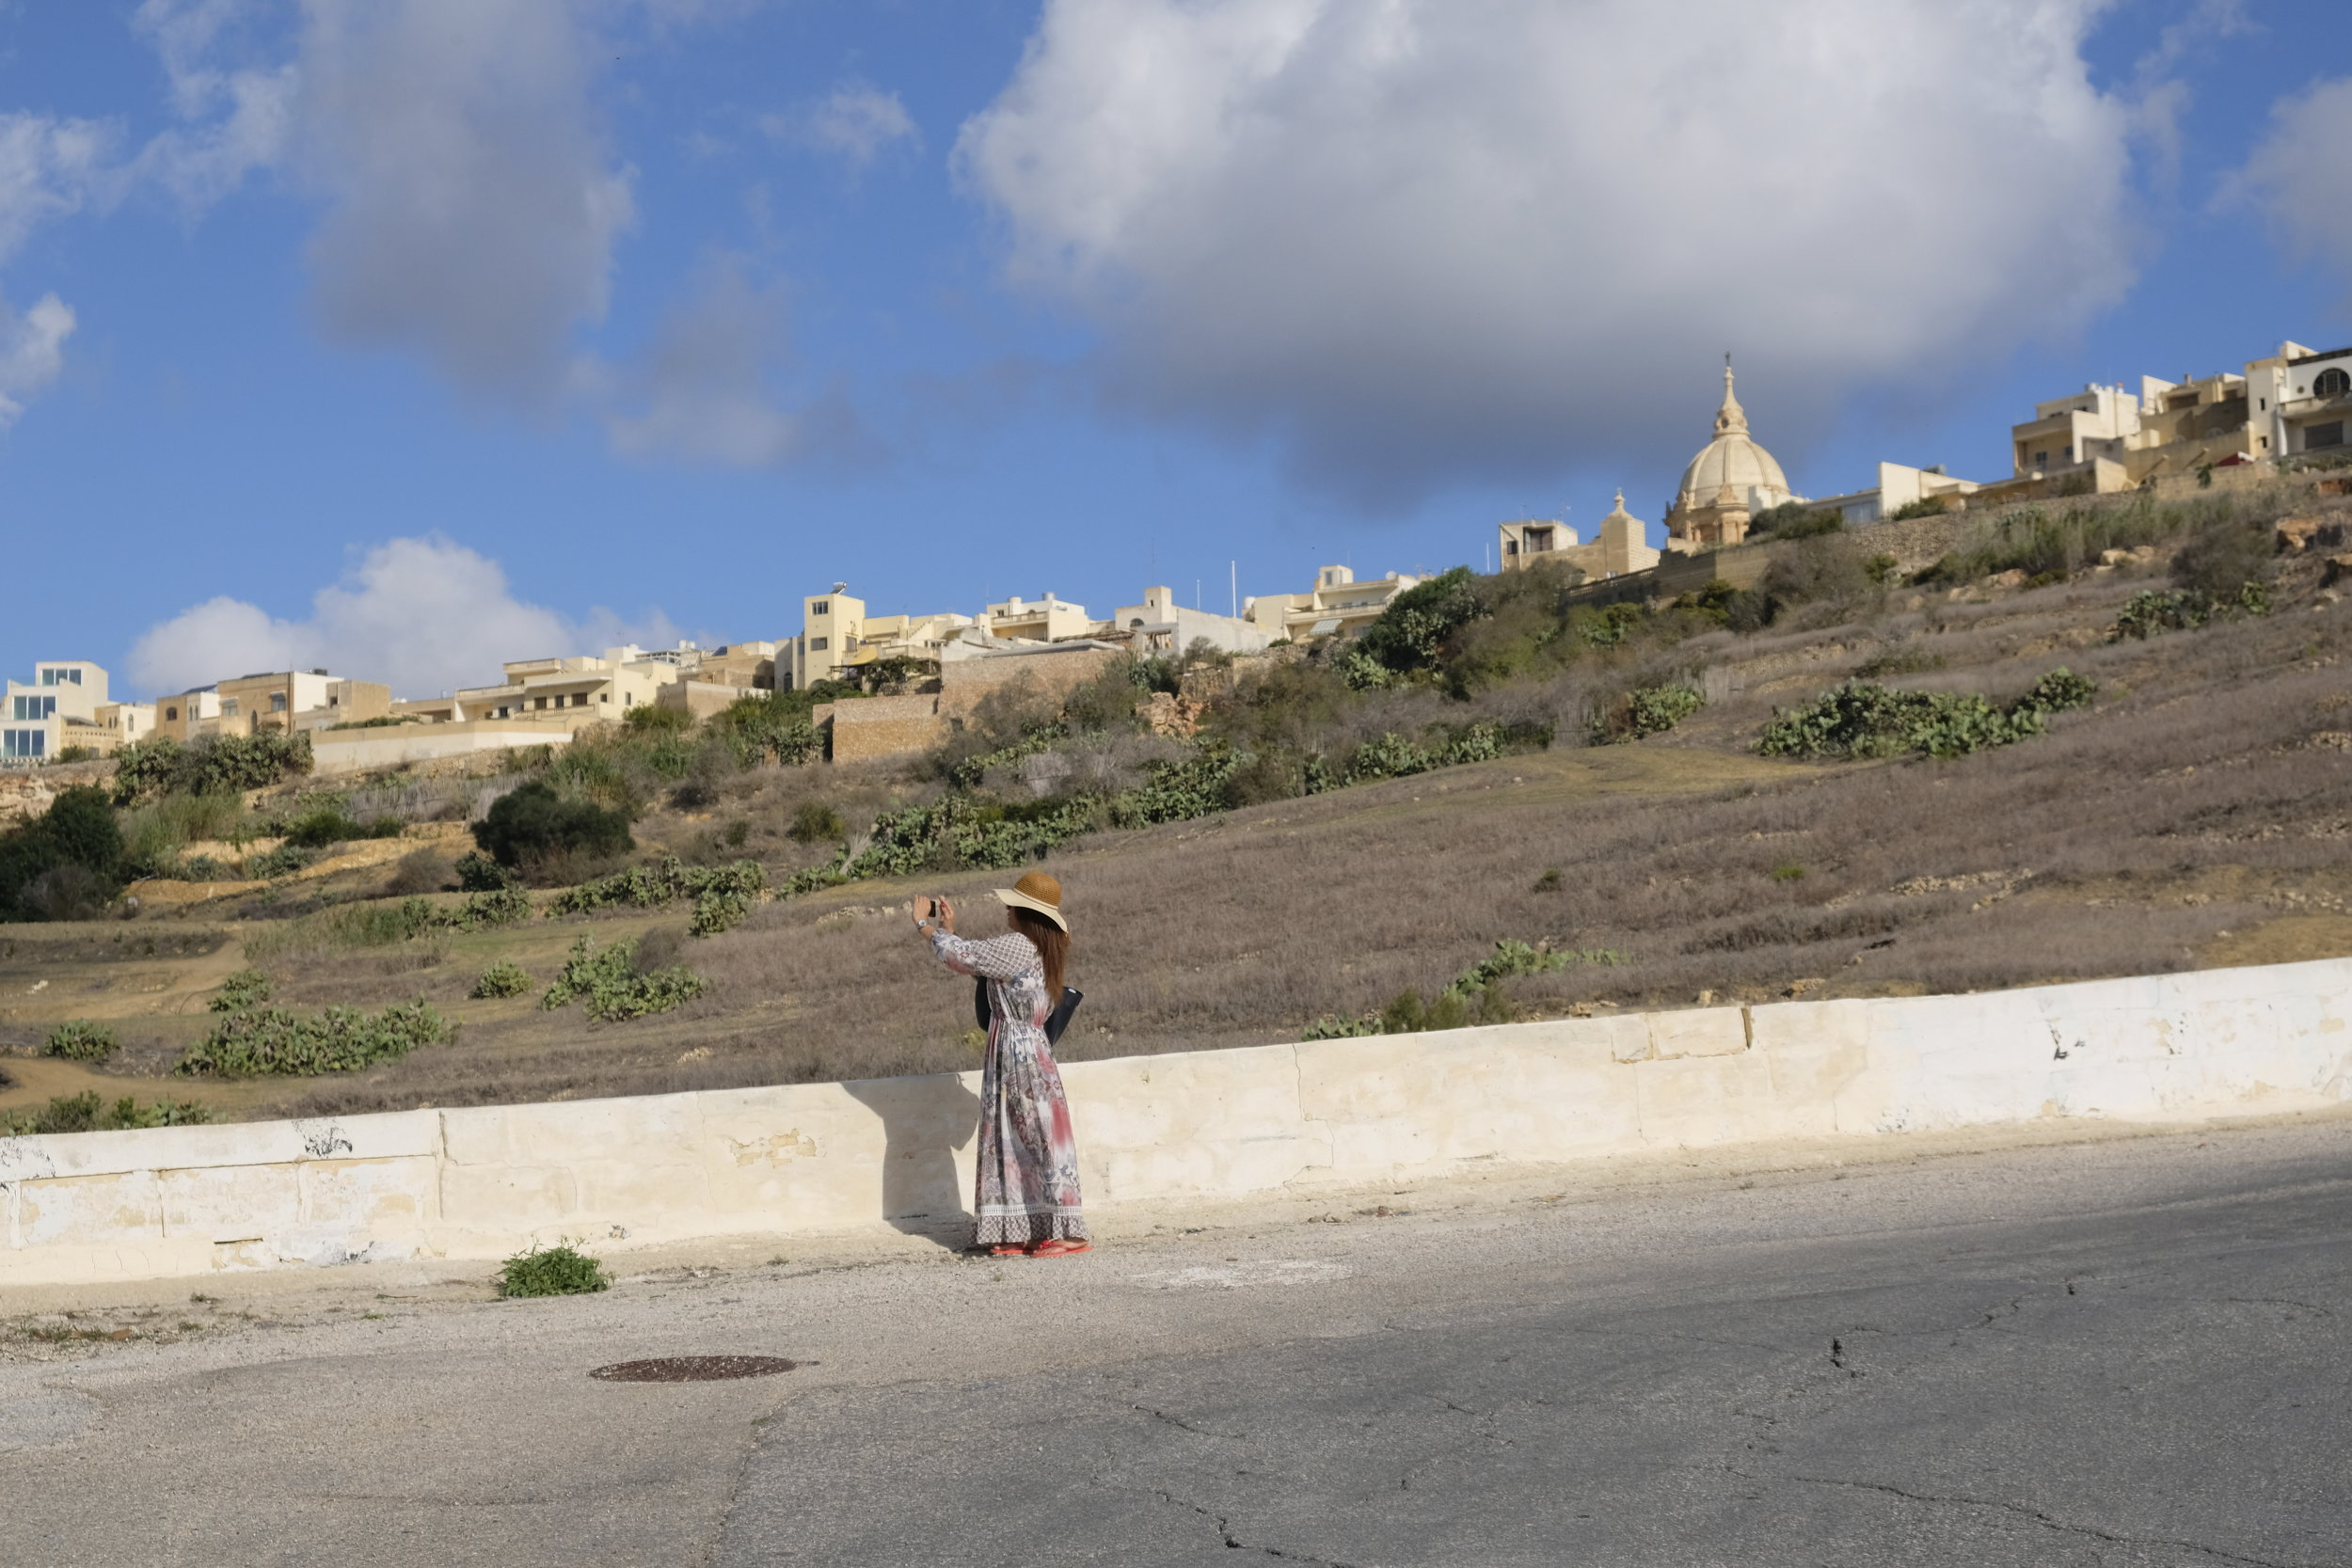 In a valley along the winding Triq Imgarr, on the way to Gozo's ferry terminal